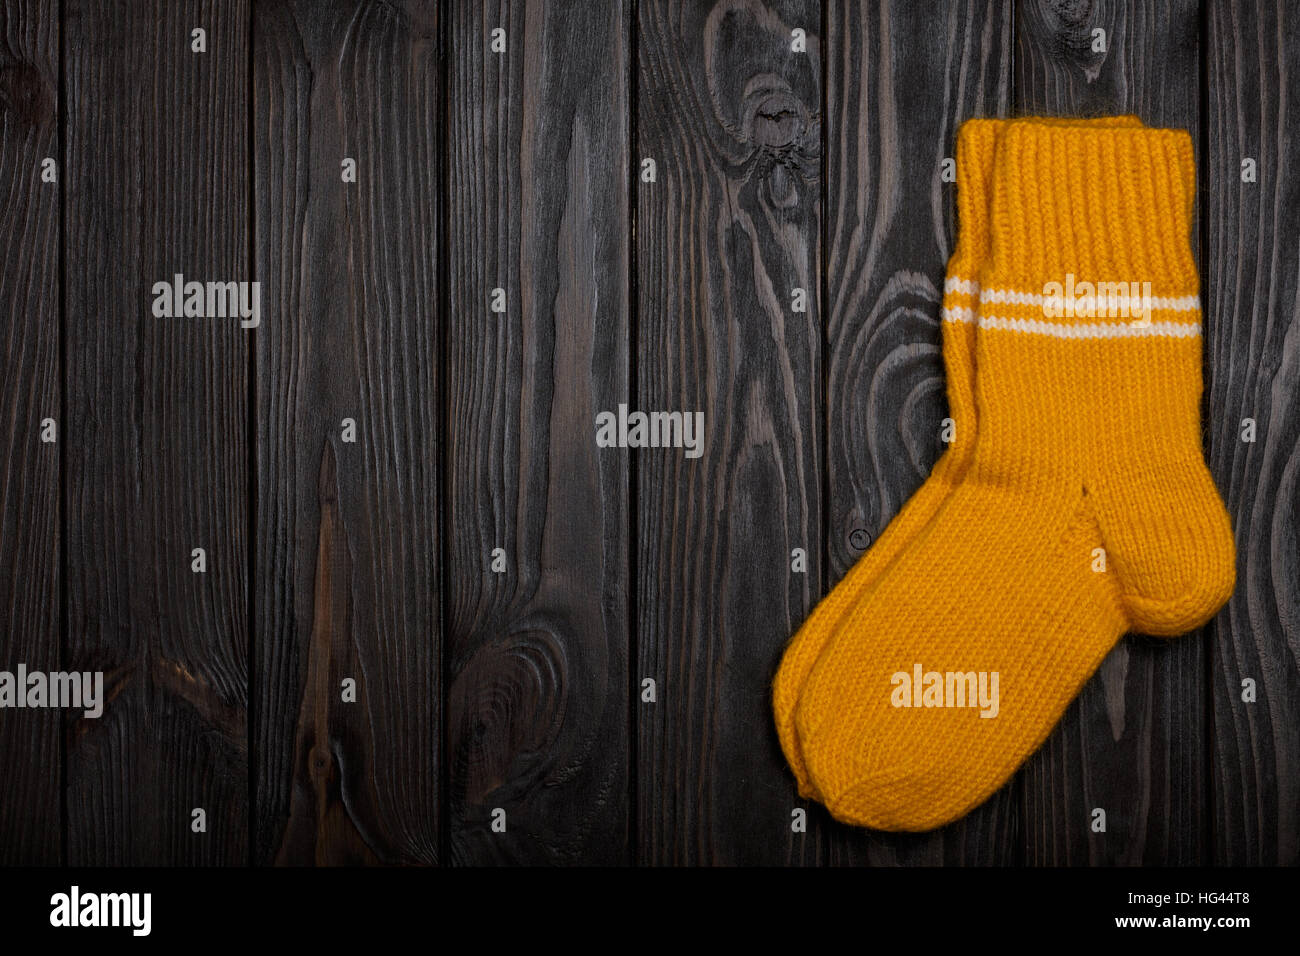 Knit yellow wool socks on dark wooden background. - Stock Image